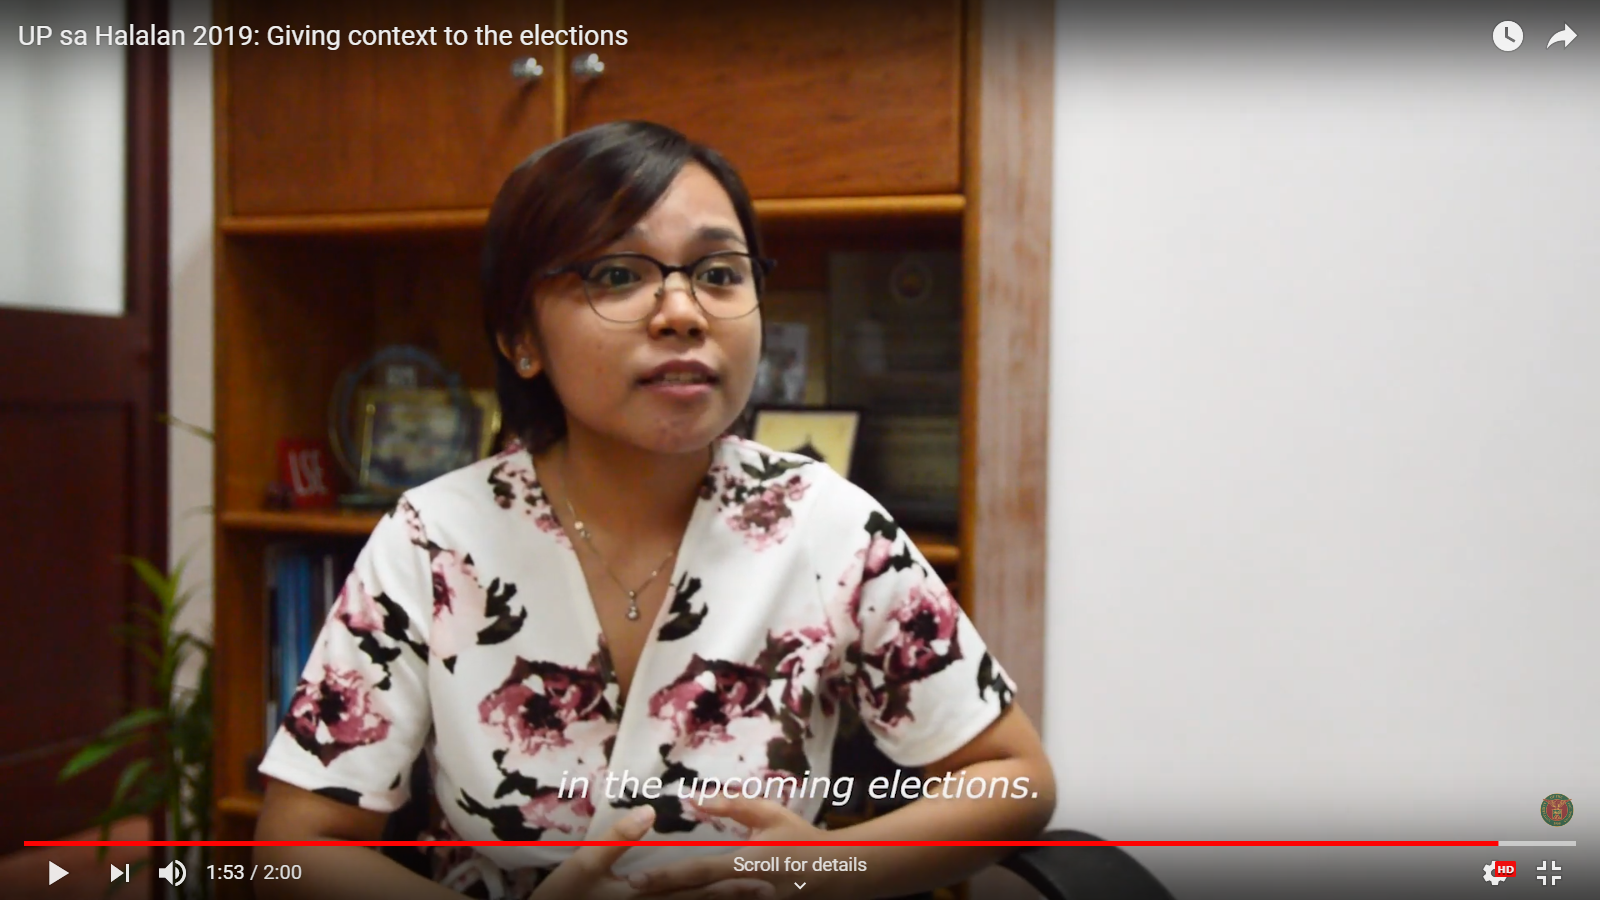 UP sa Halalan 2019: Giving context to the elections